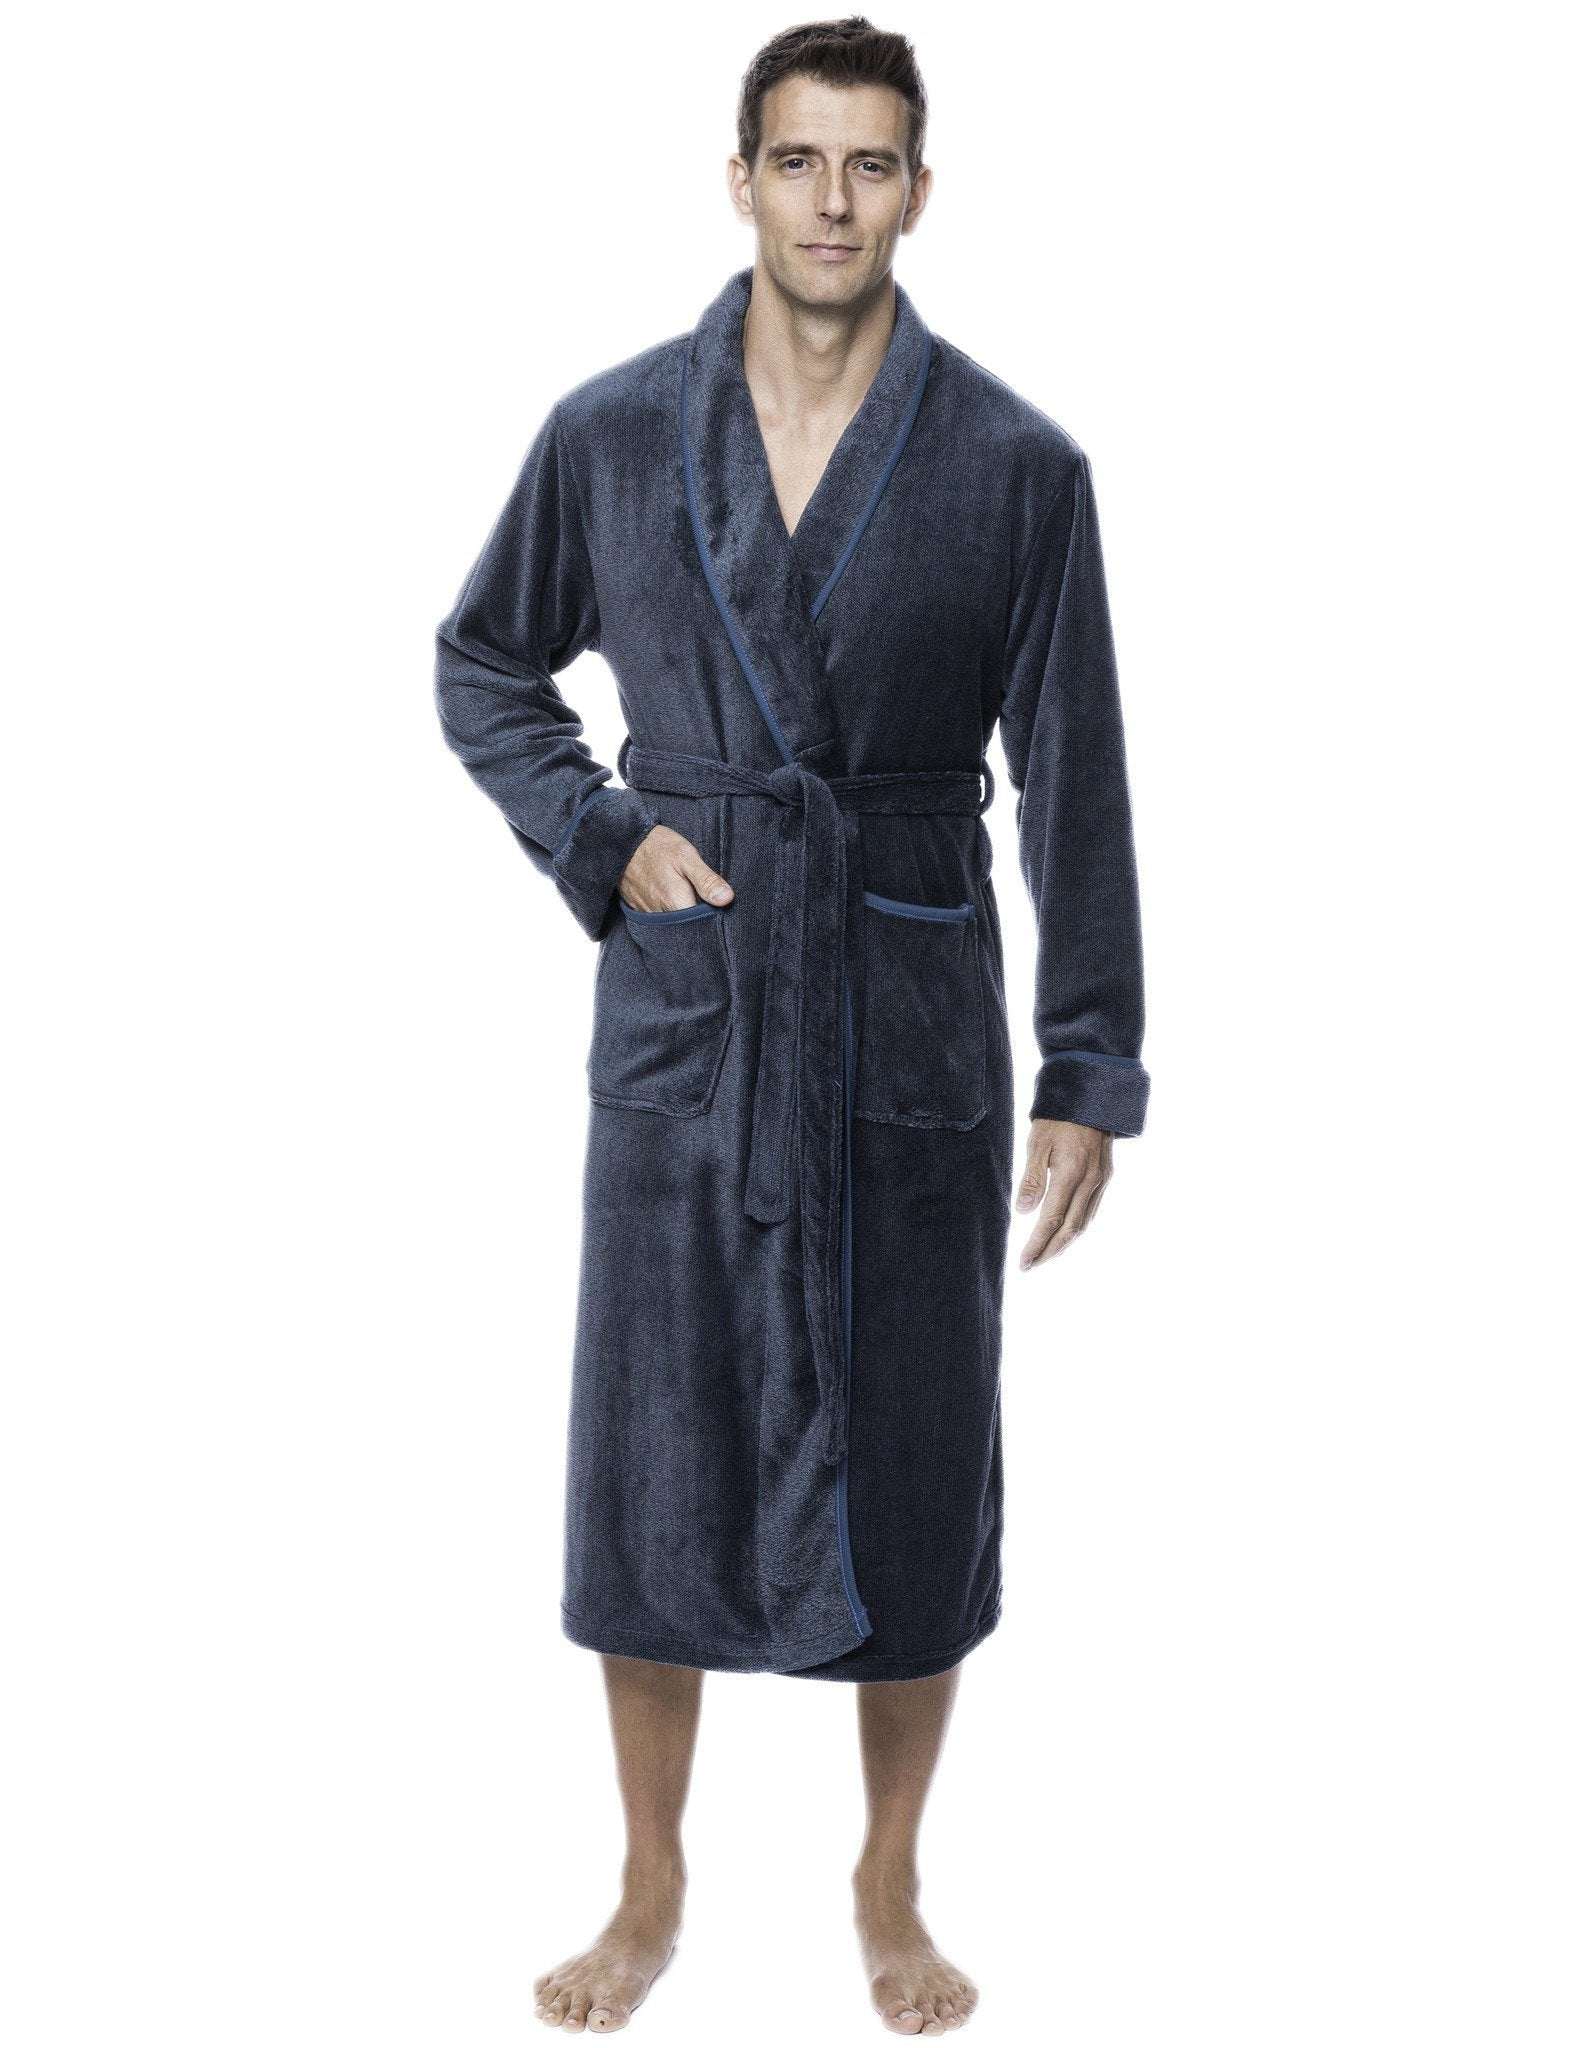 Men's Premium Coral Fleece Plush Spa/Bath Robe - Marl Teal/Grey